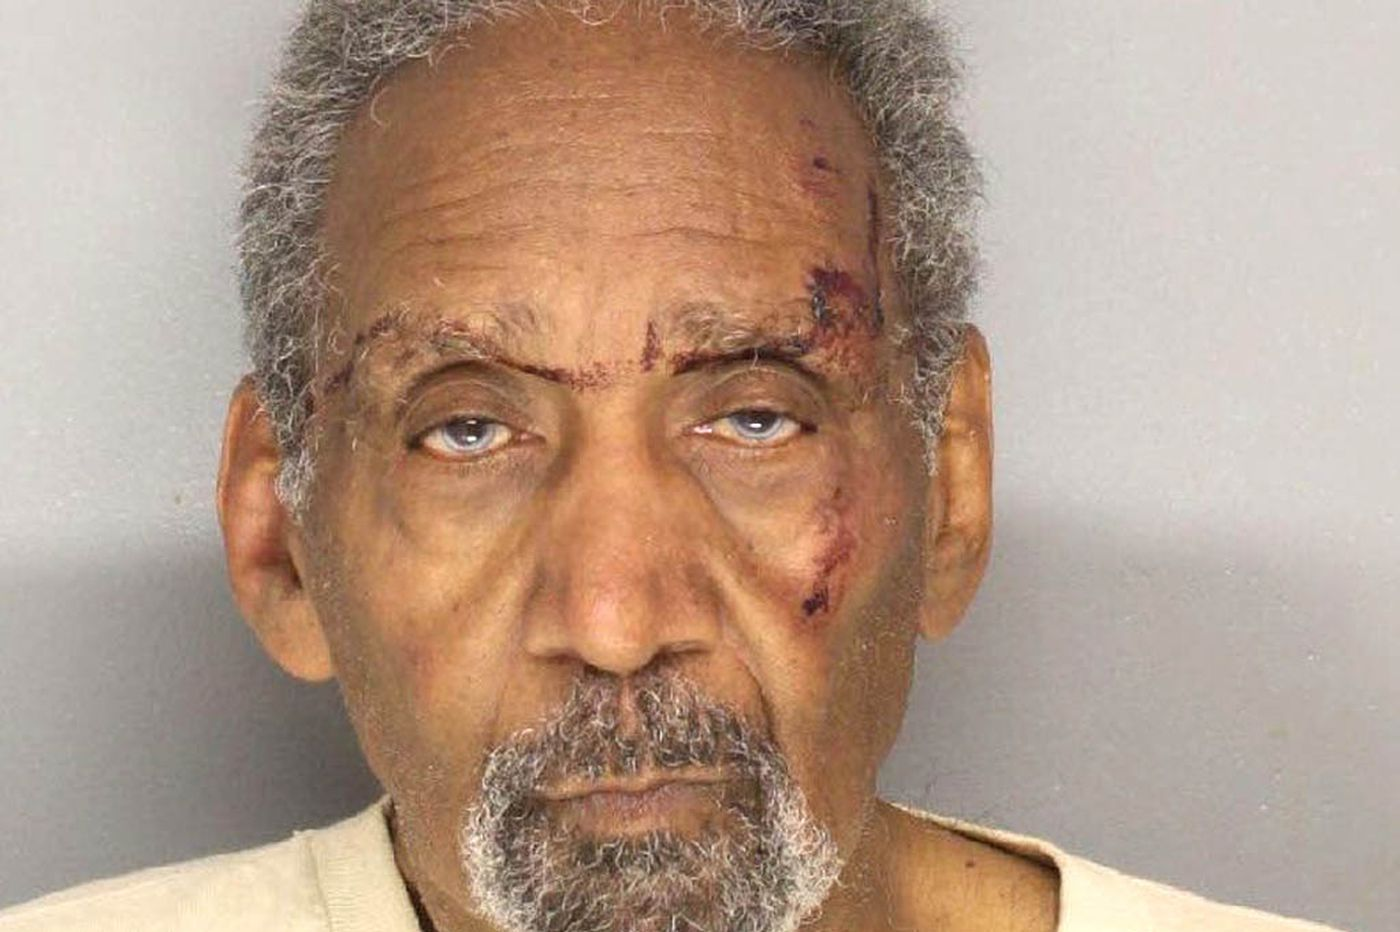 Retired Philly cop, 79, arrested for impersonating cop